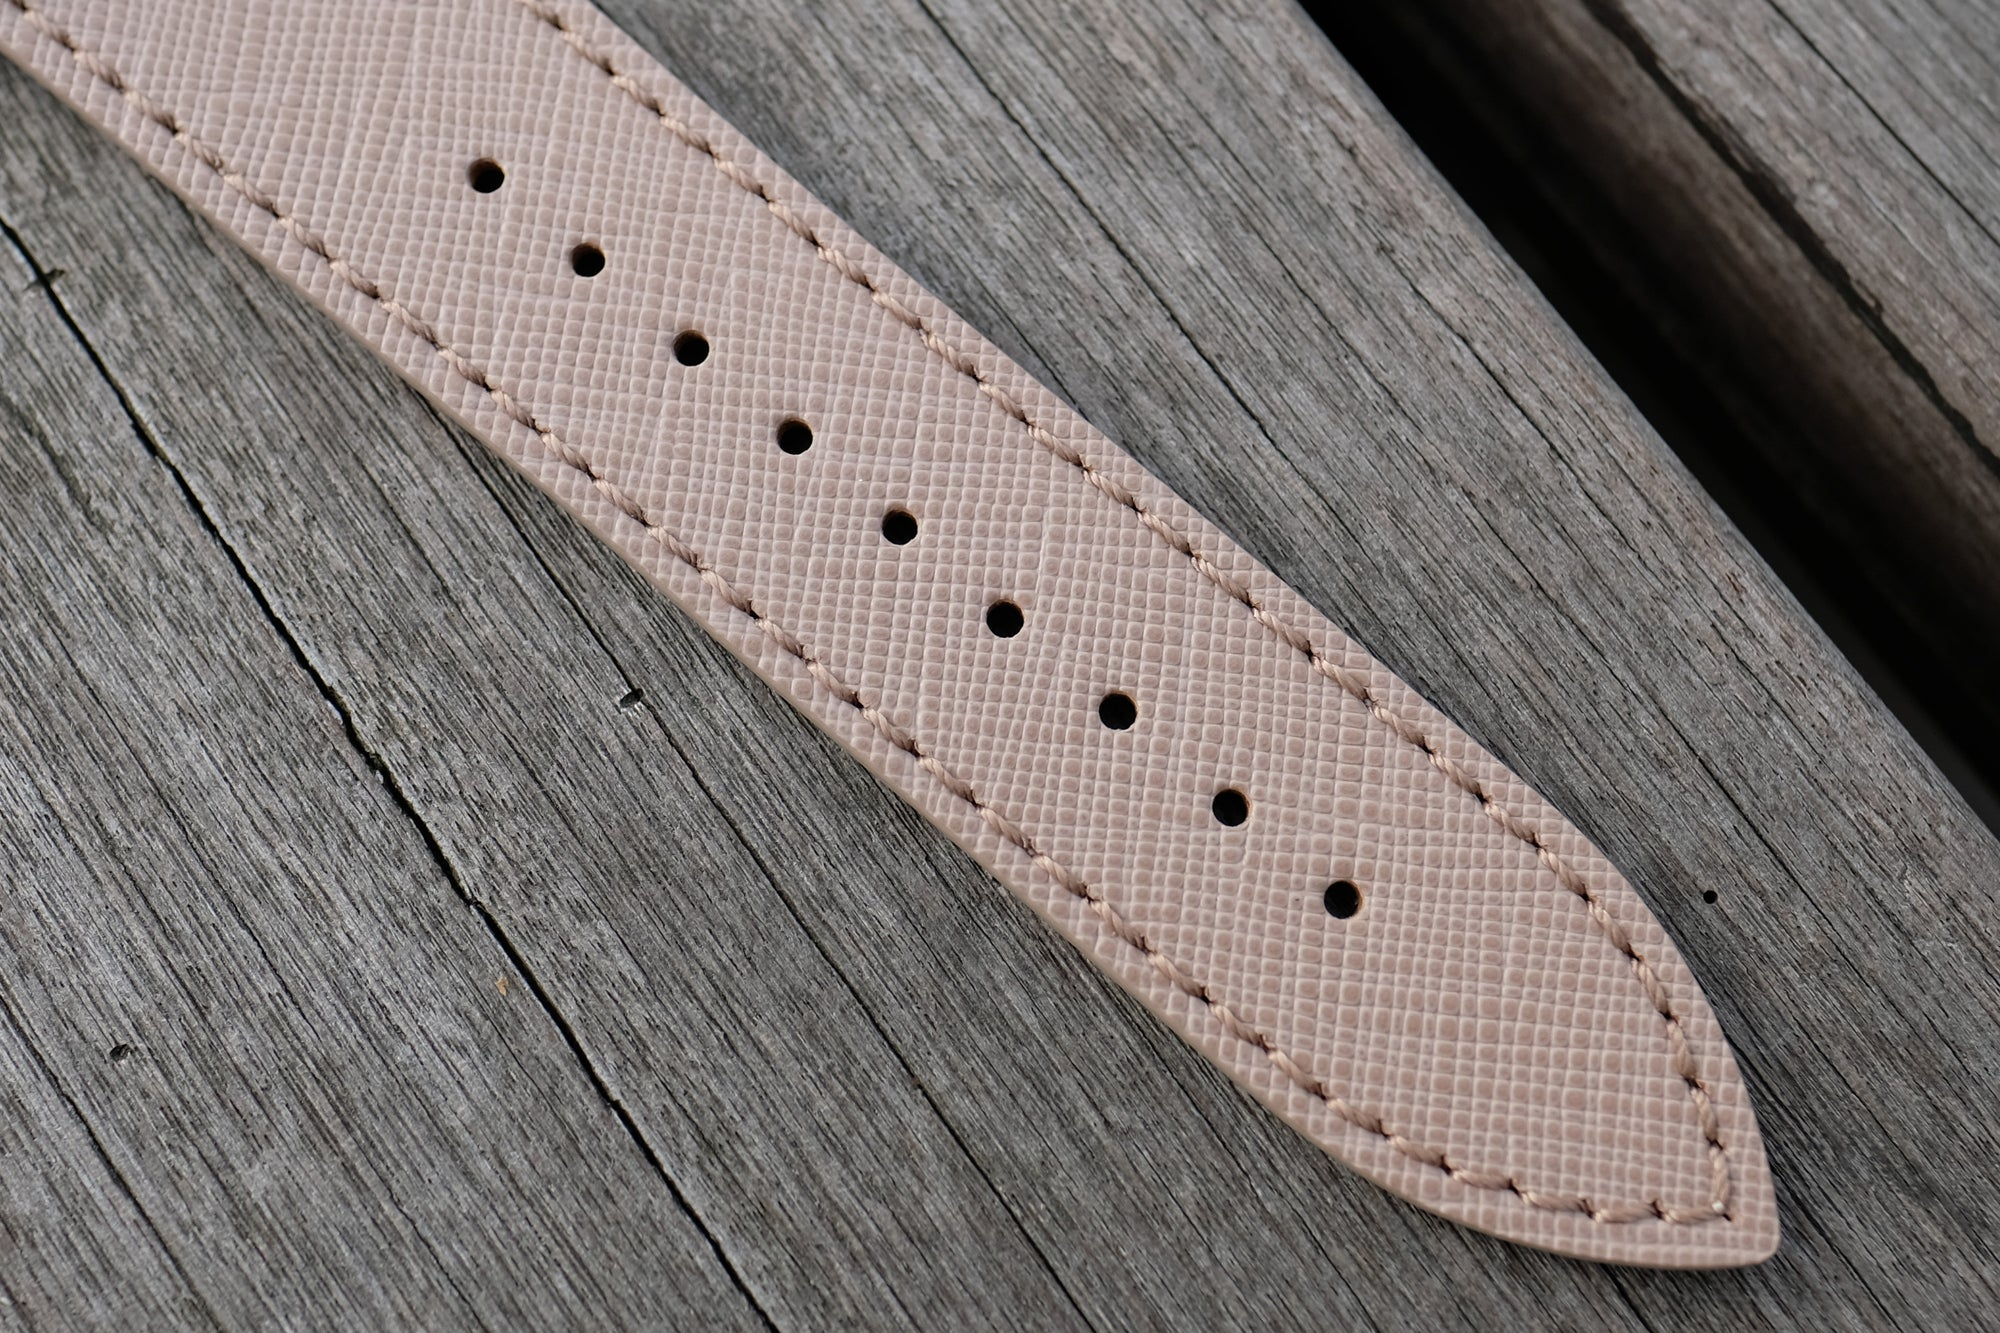 Pin and Buckle Apple Watch Bands - Saffiano - Textured Leather Apple Watch Bands - Texture - Taupe